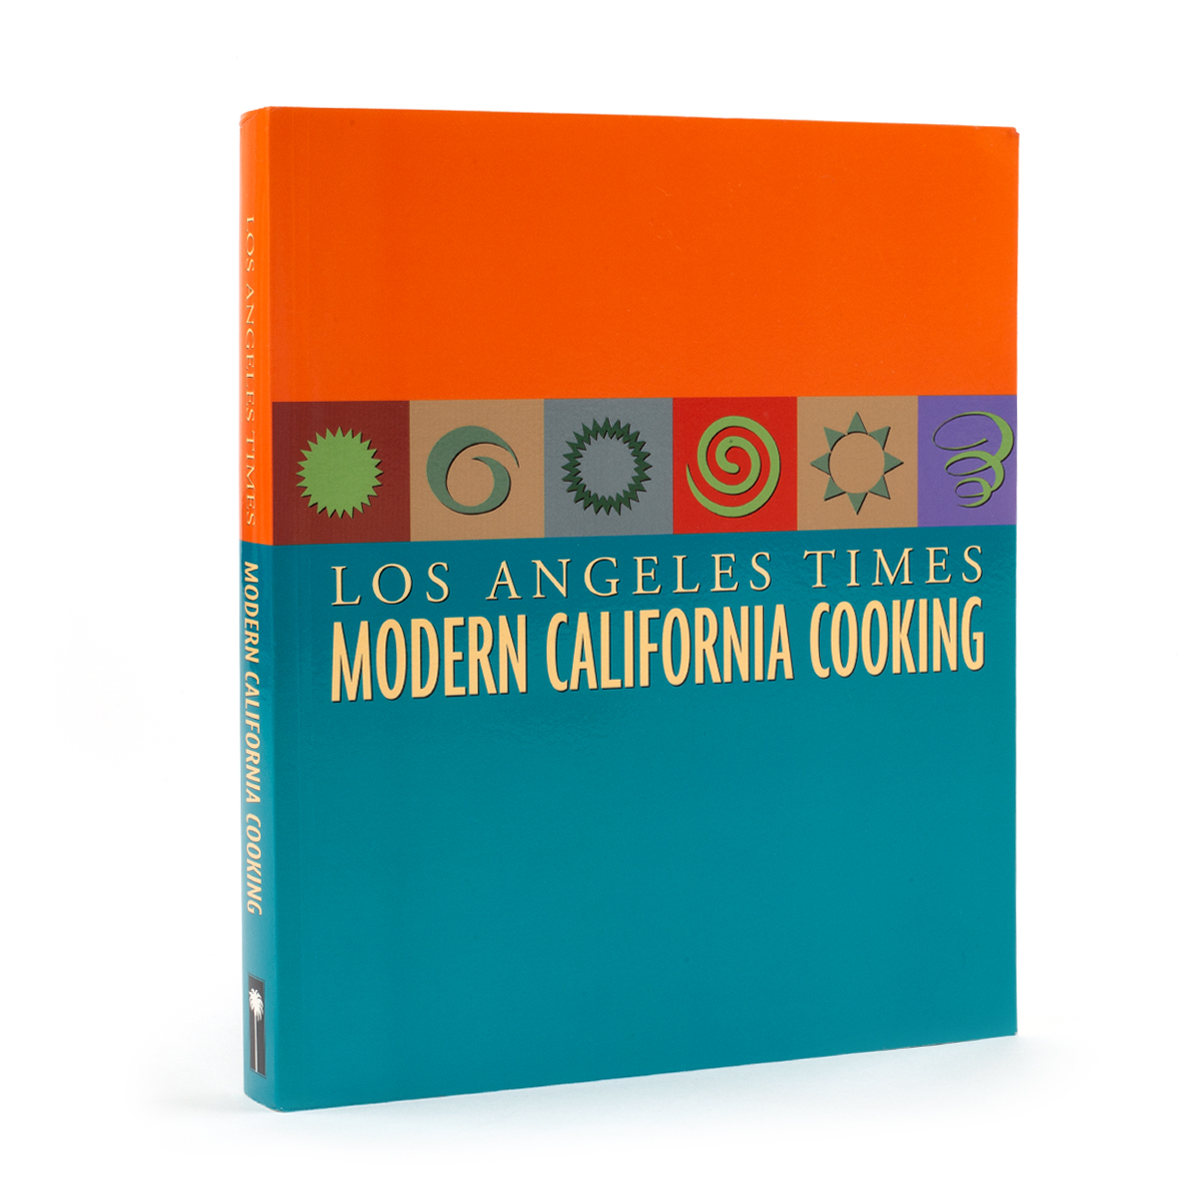 Los Angeles Times Modern California Cooking